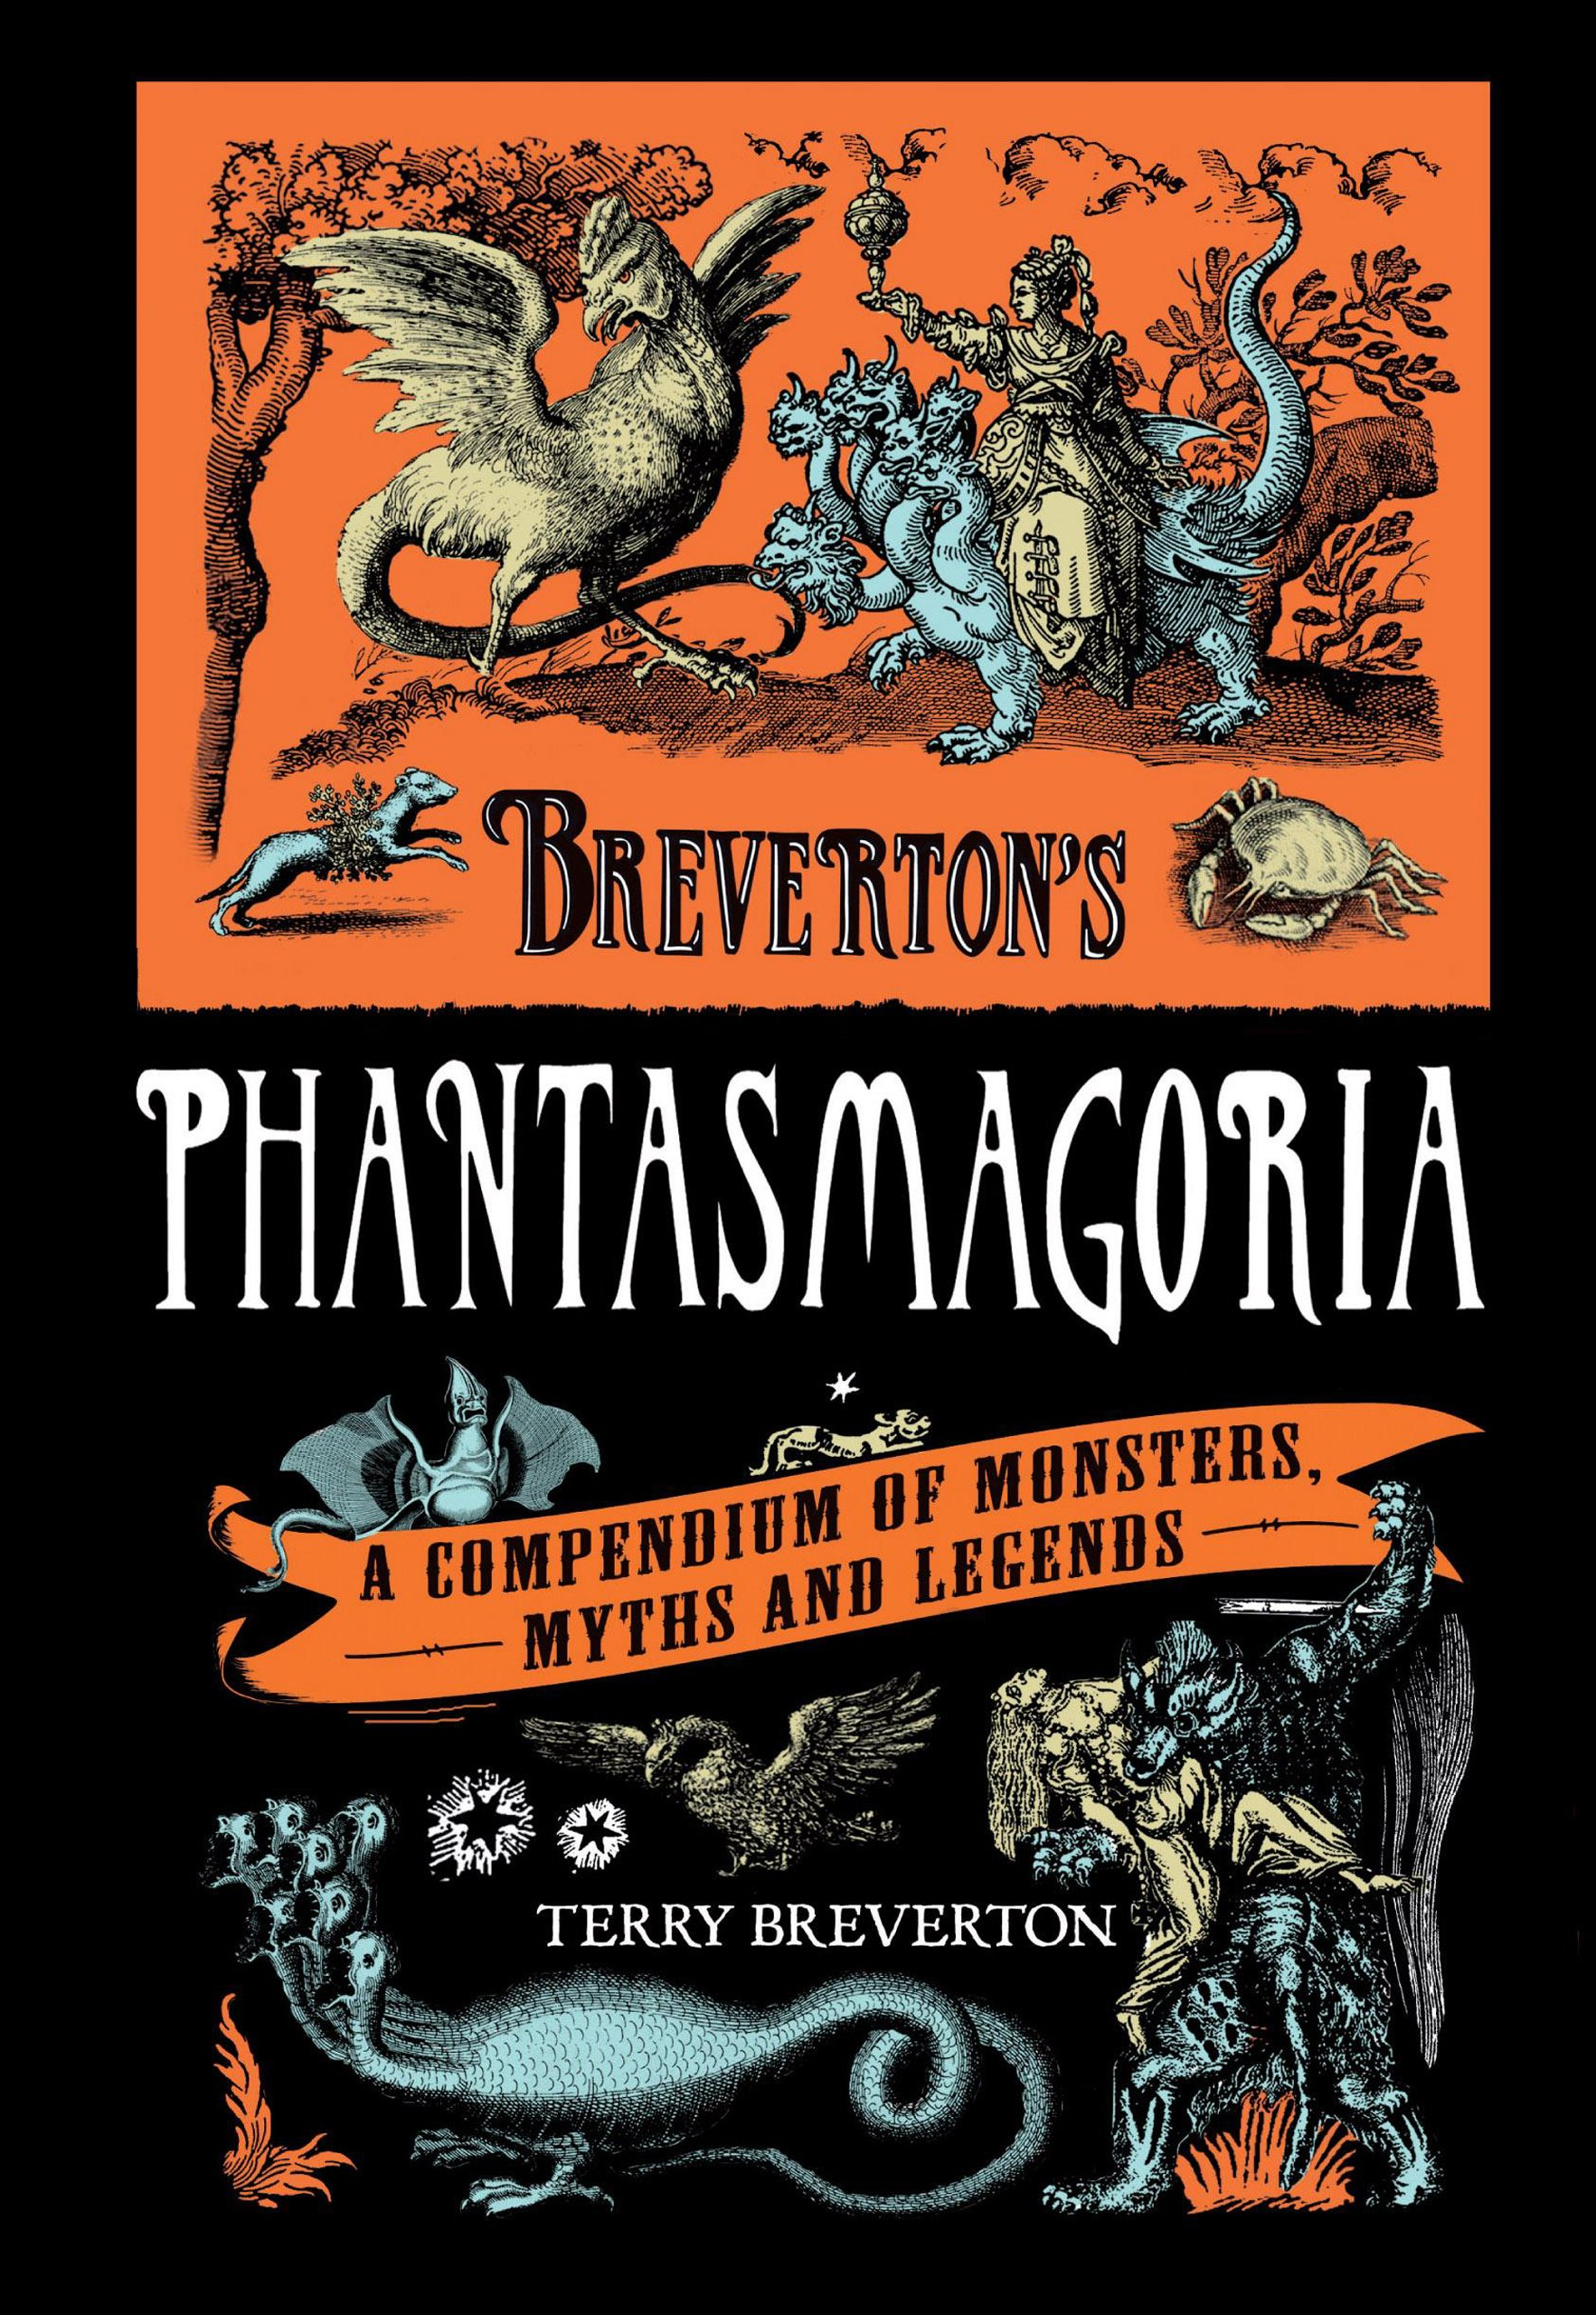 Breverton's Phantasmagoria: A Compendium Of Monsters, Myths And Legends:  Terry Breverton: 9780762770236: Amazon.com: Books